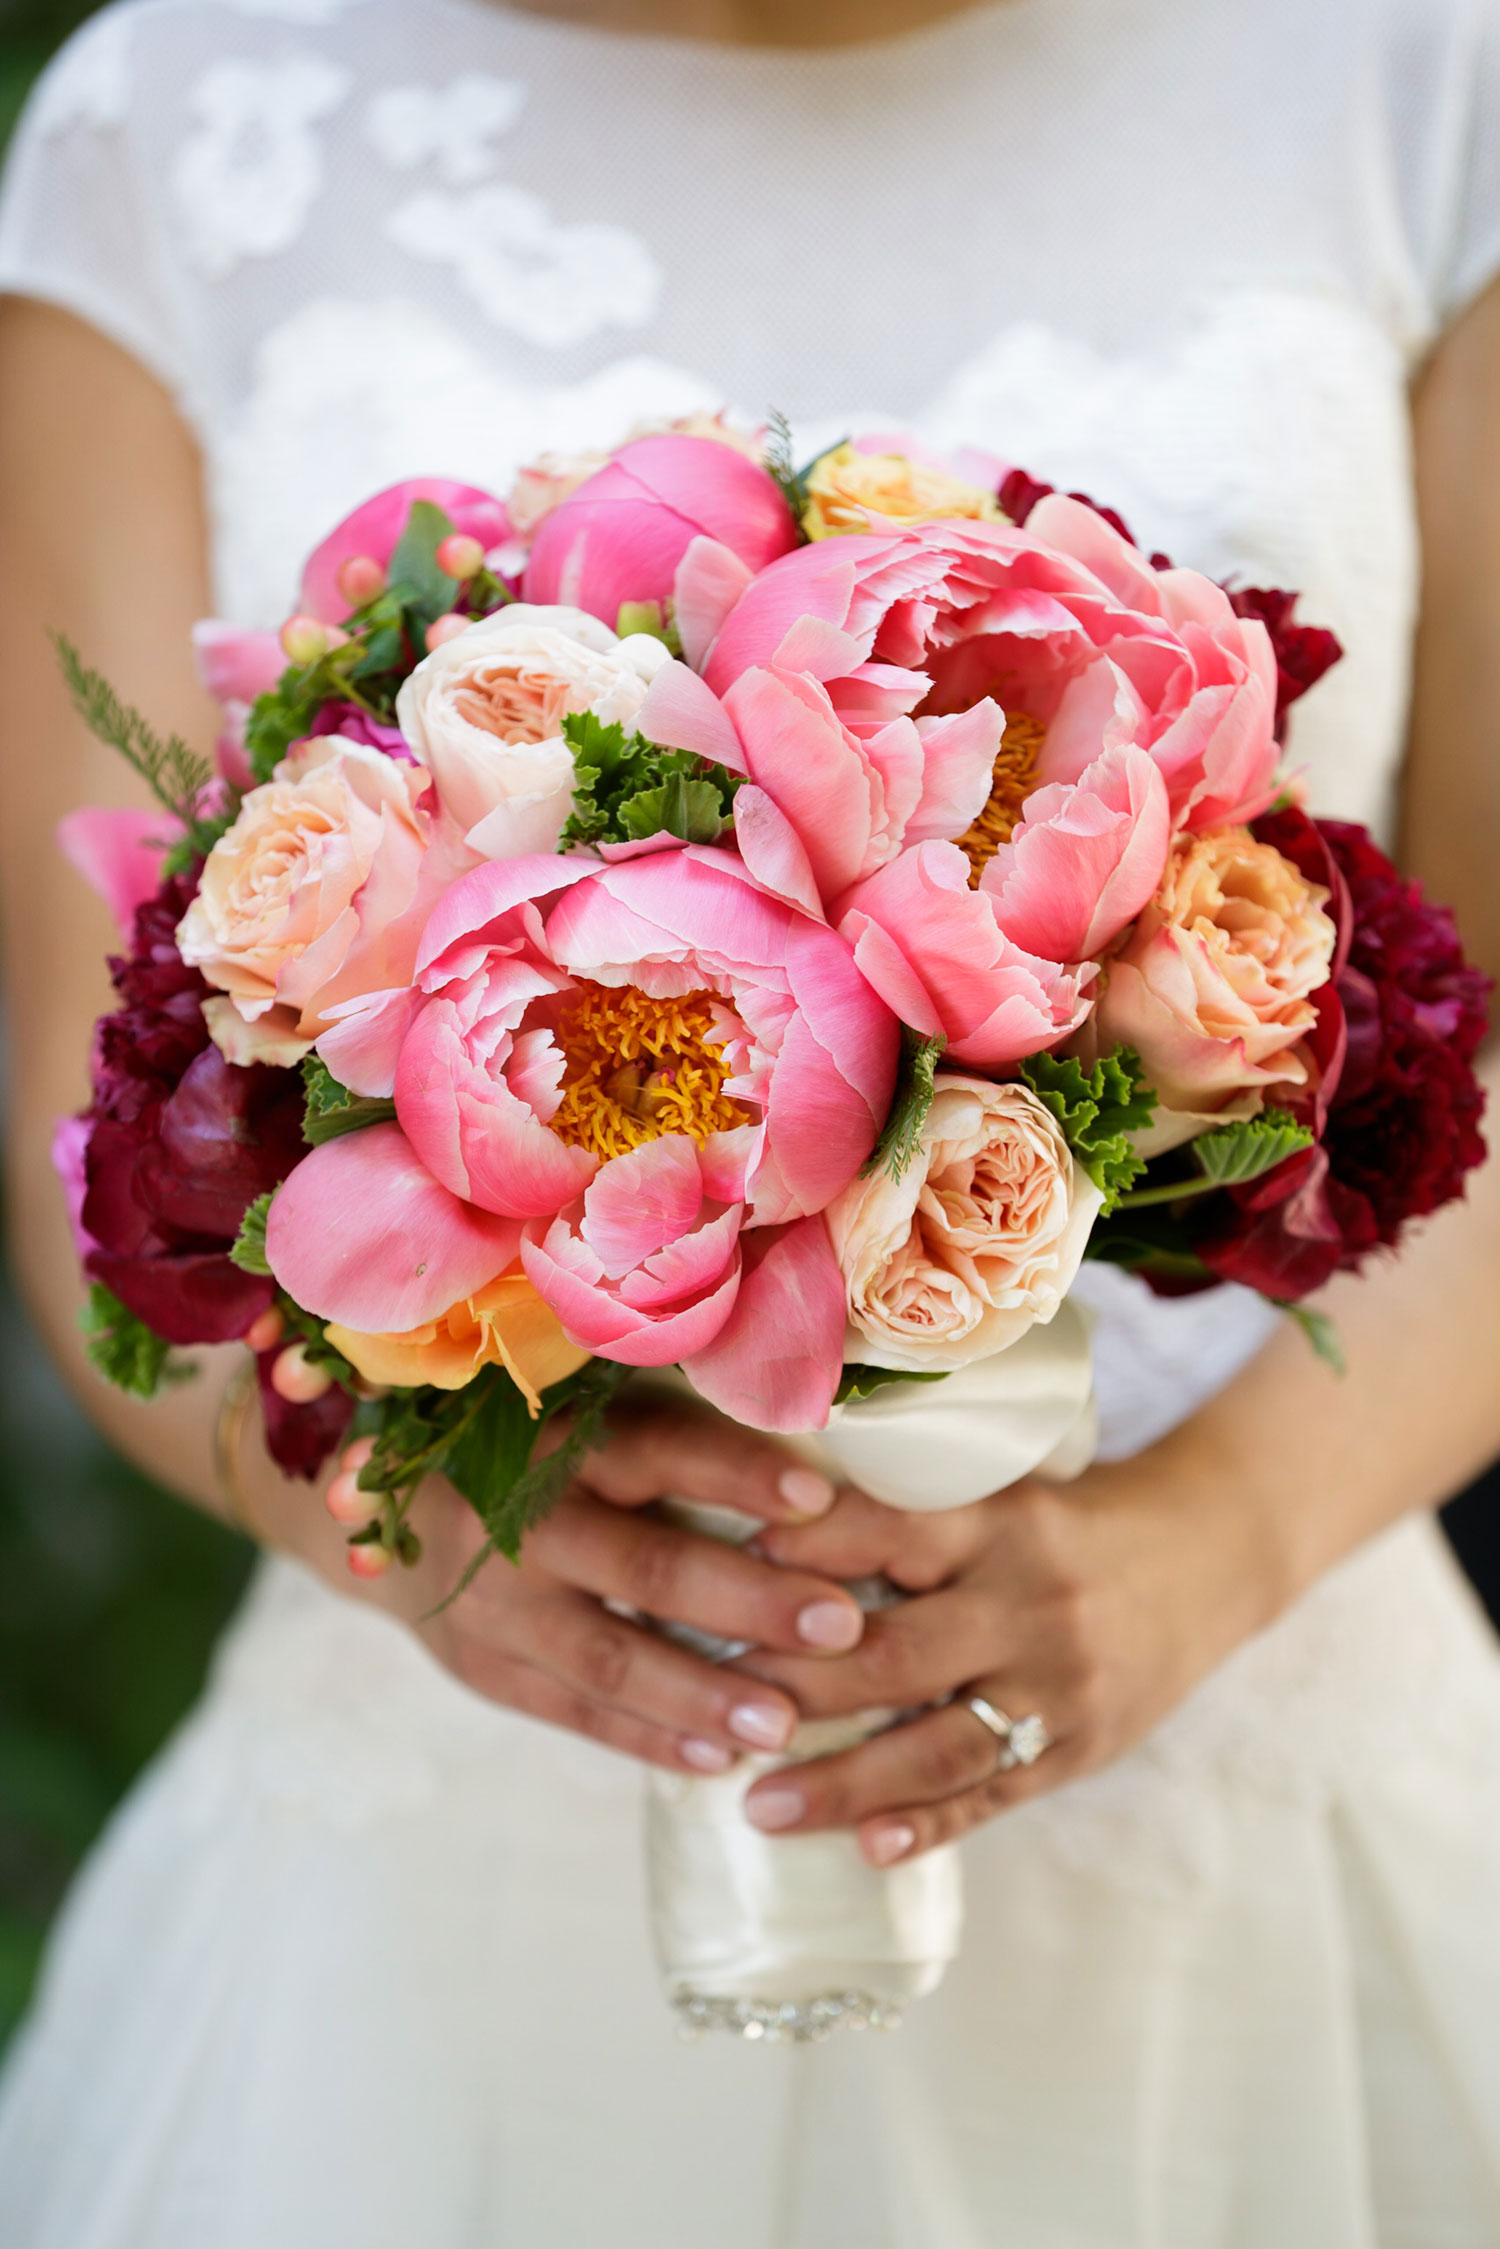 Bride holding pink peony wedding bouquet pink and red flowers